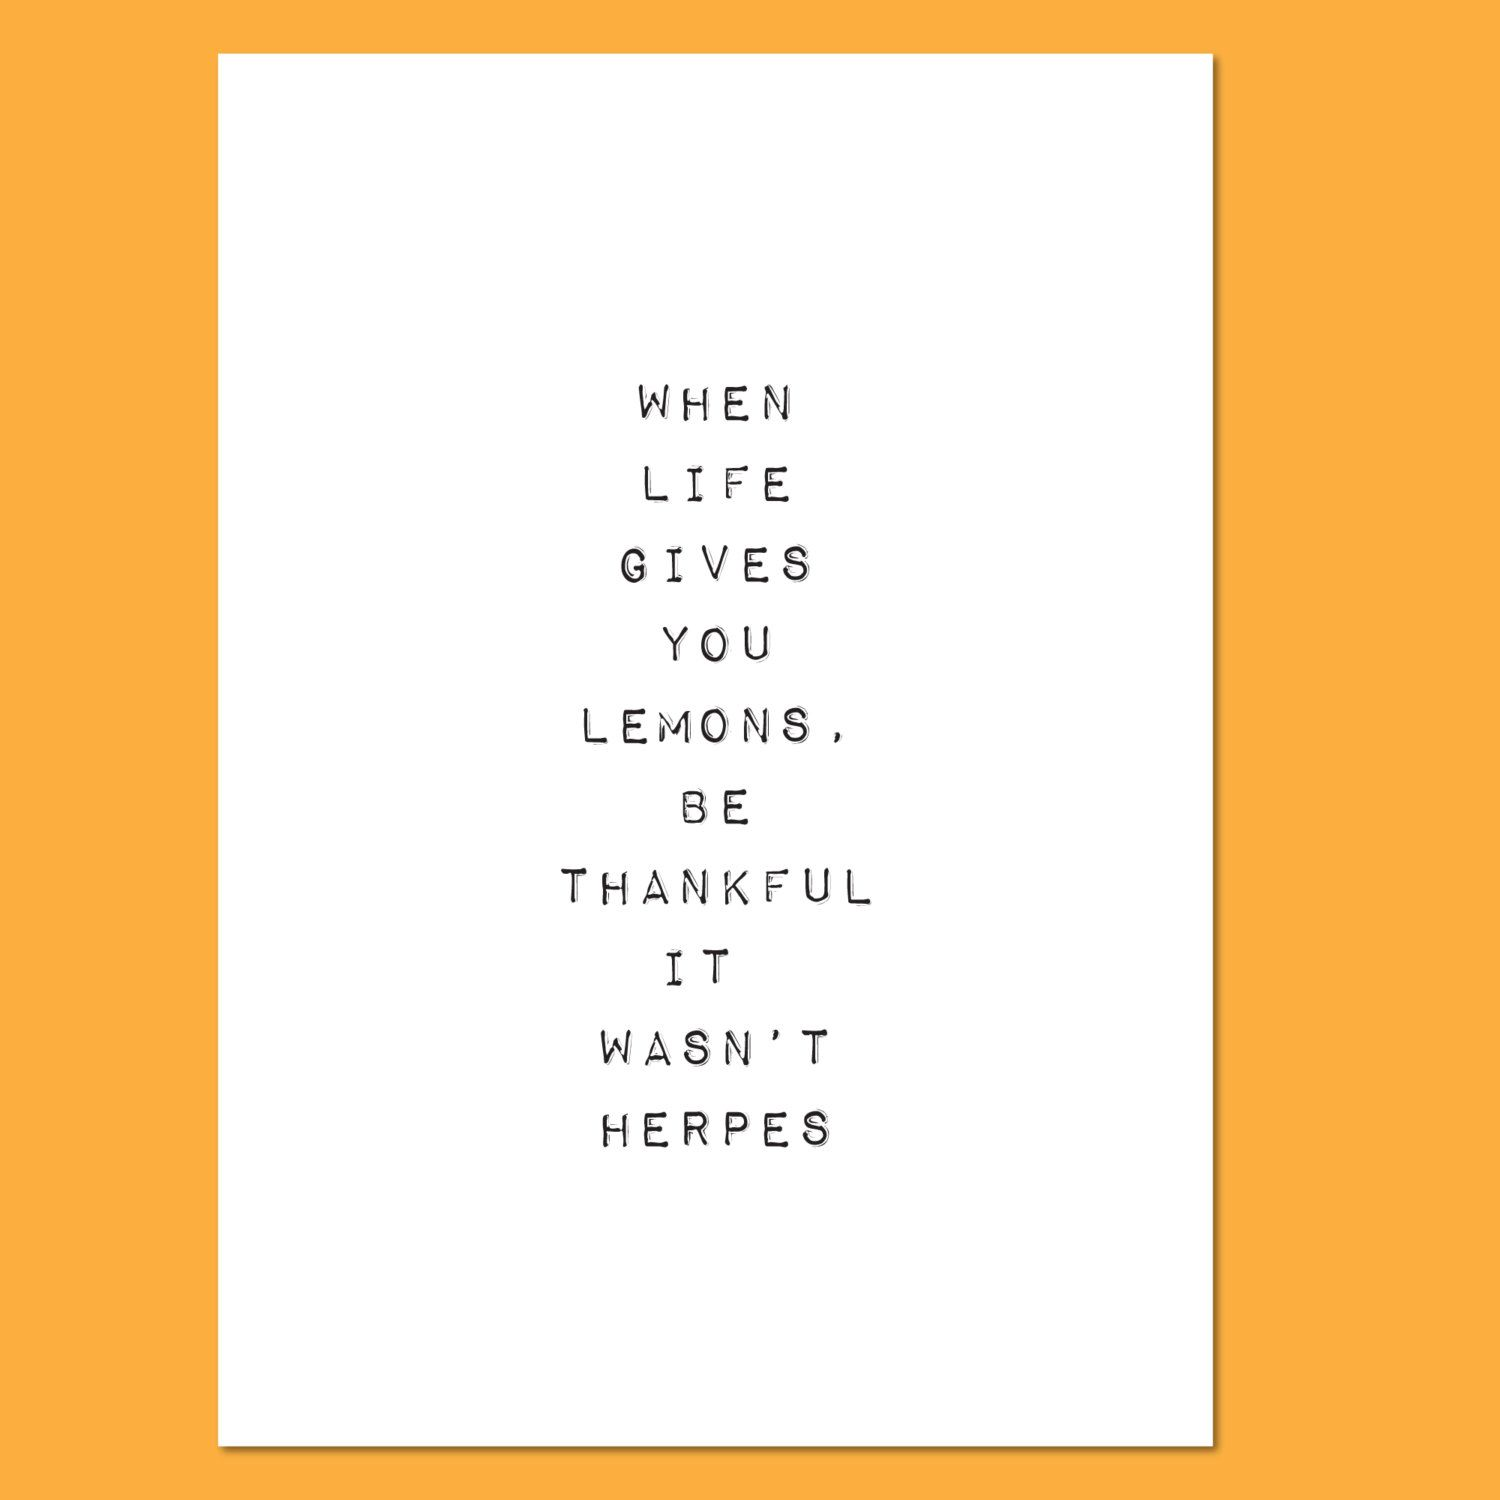 Life and lemons funny handmade greeting card get well feel better life and lemons funny handmade greeting card get well feel better sympathy by crystoo on etsy m4hsunfo